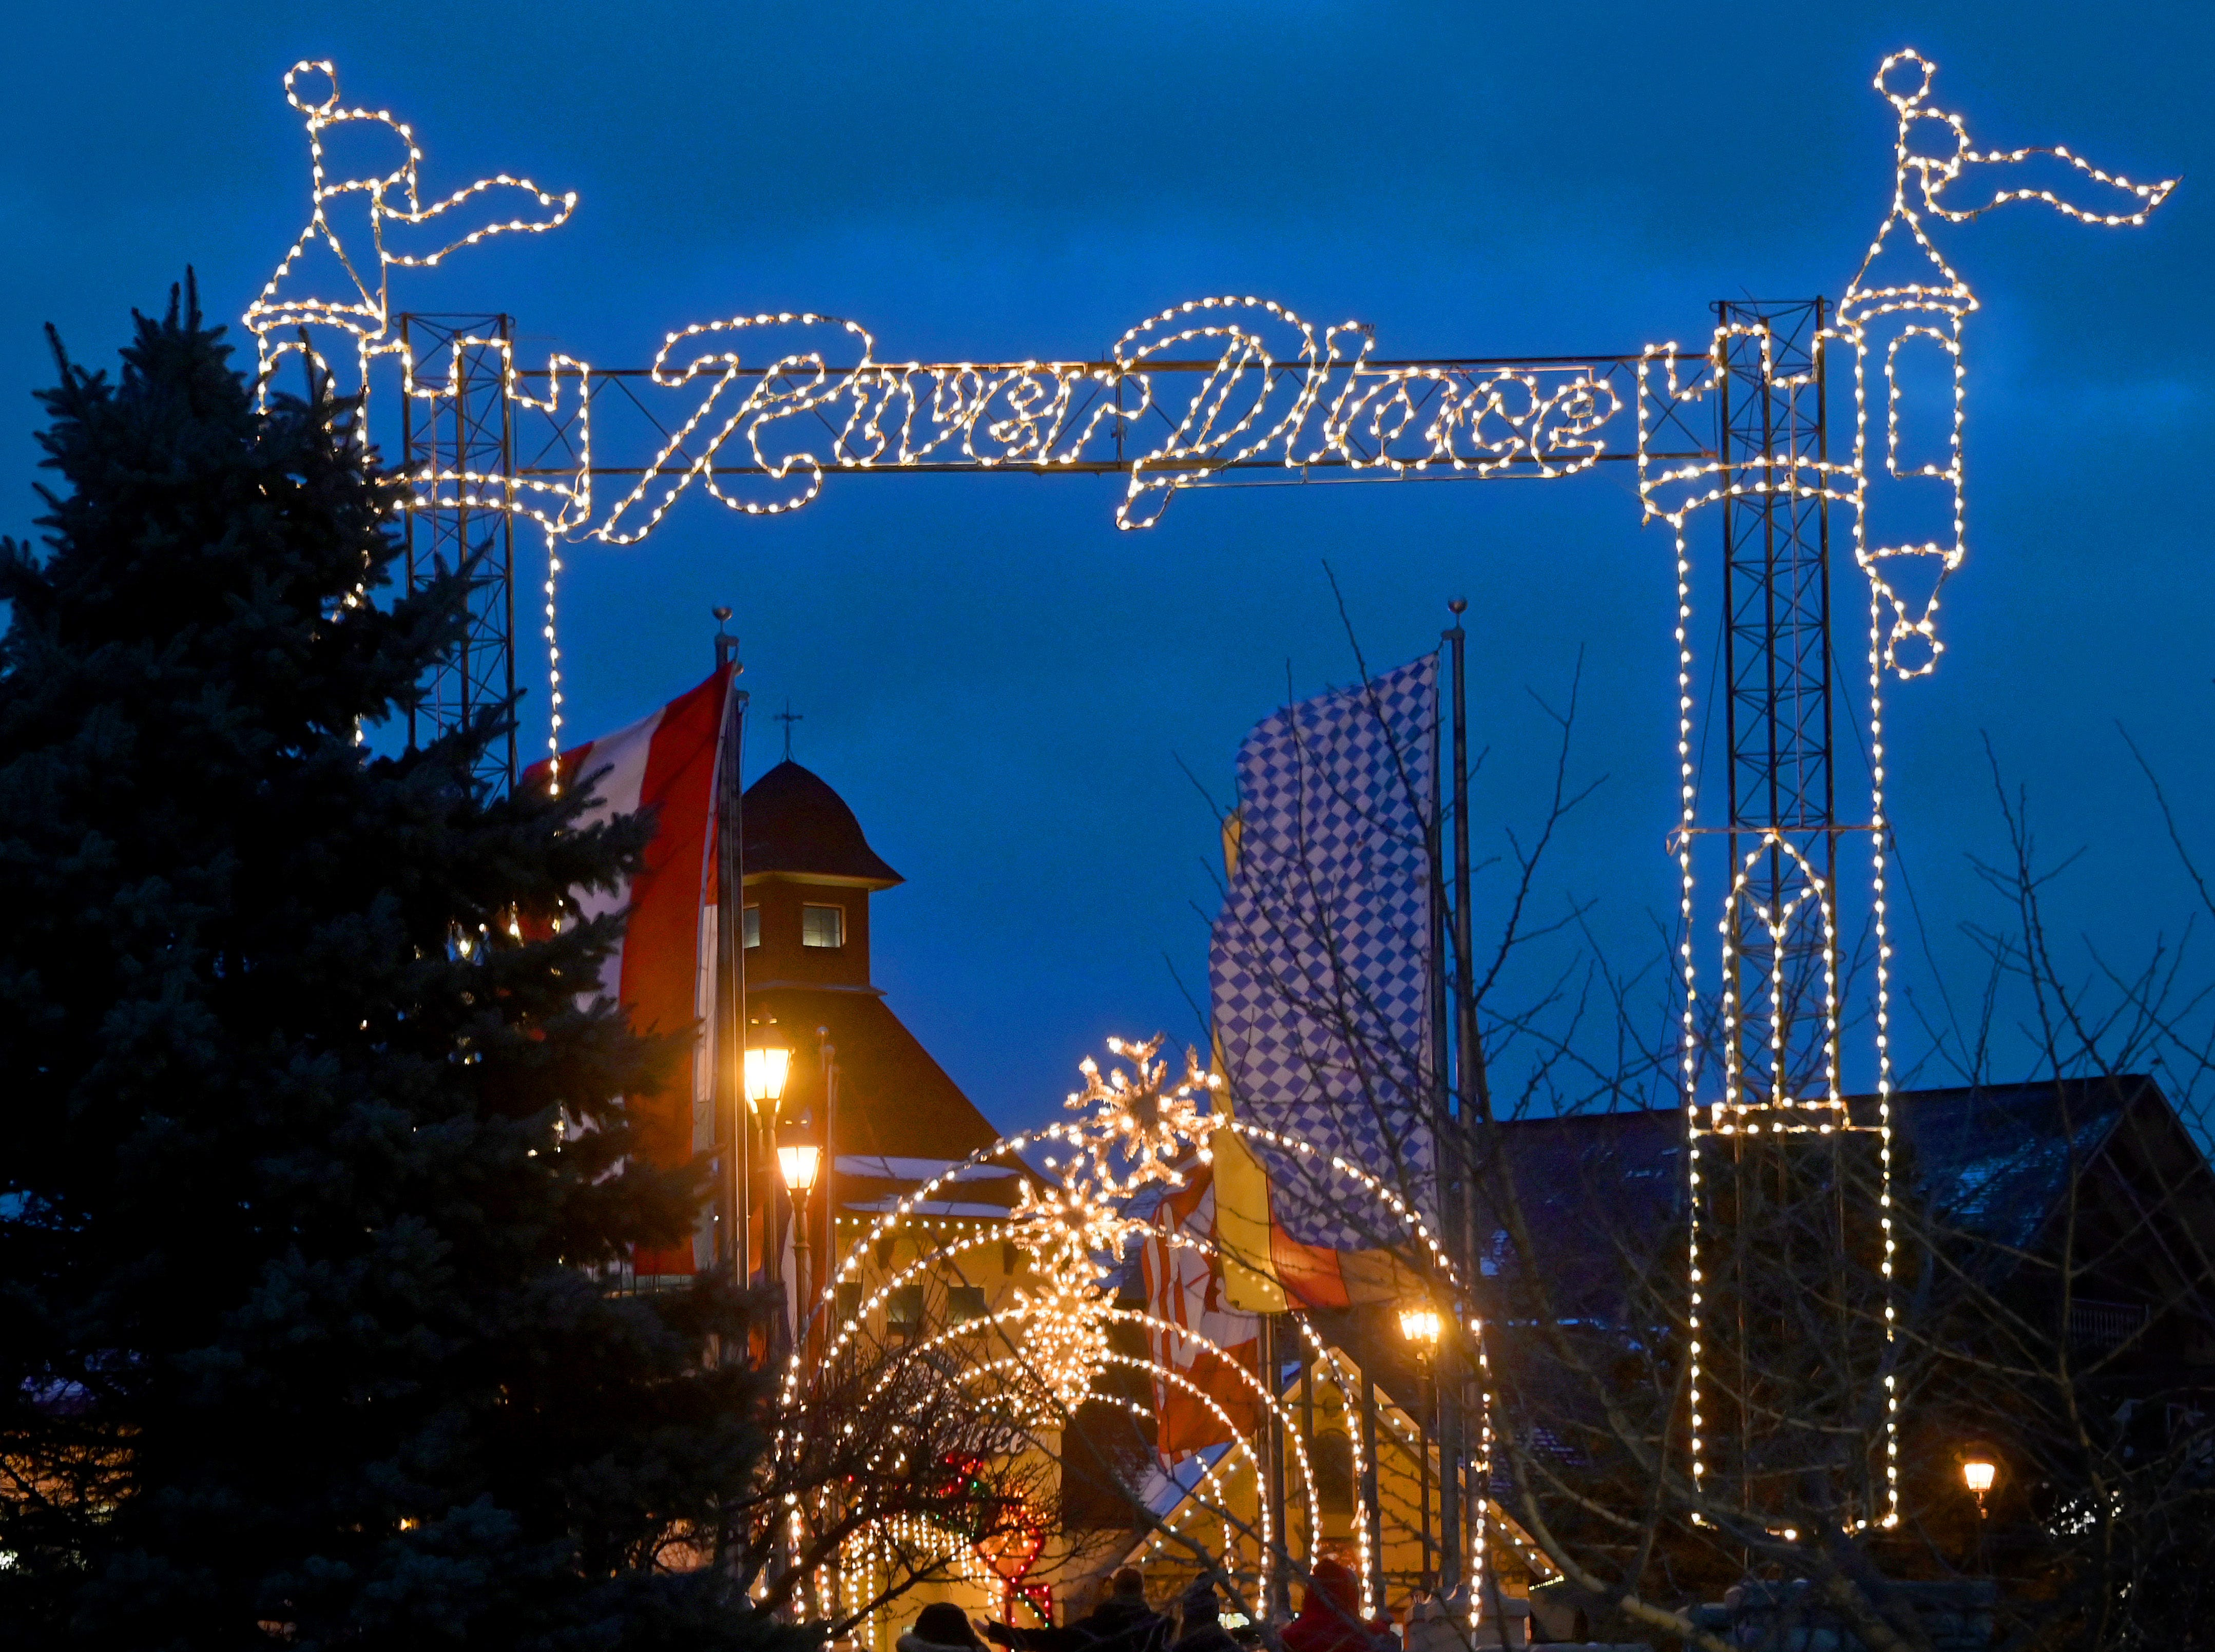 Holiday visitors cross a whimsically lighted pedestrian bridge over the Cass River in Frankenmuth.